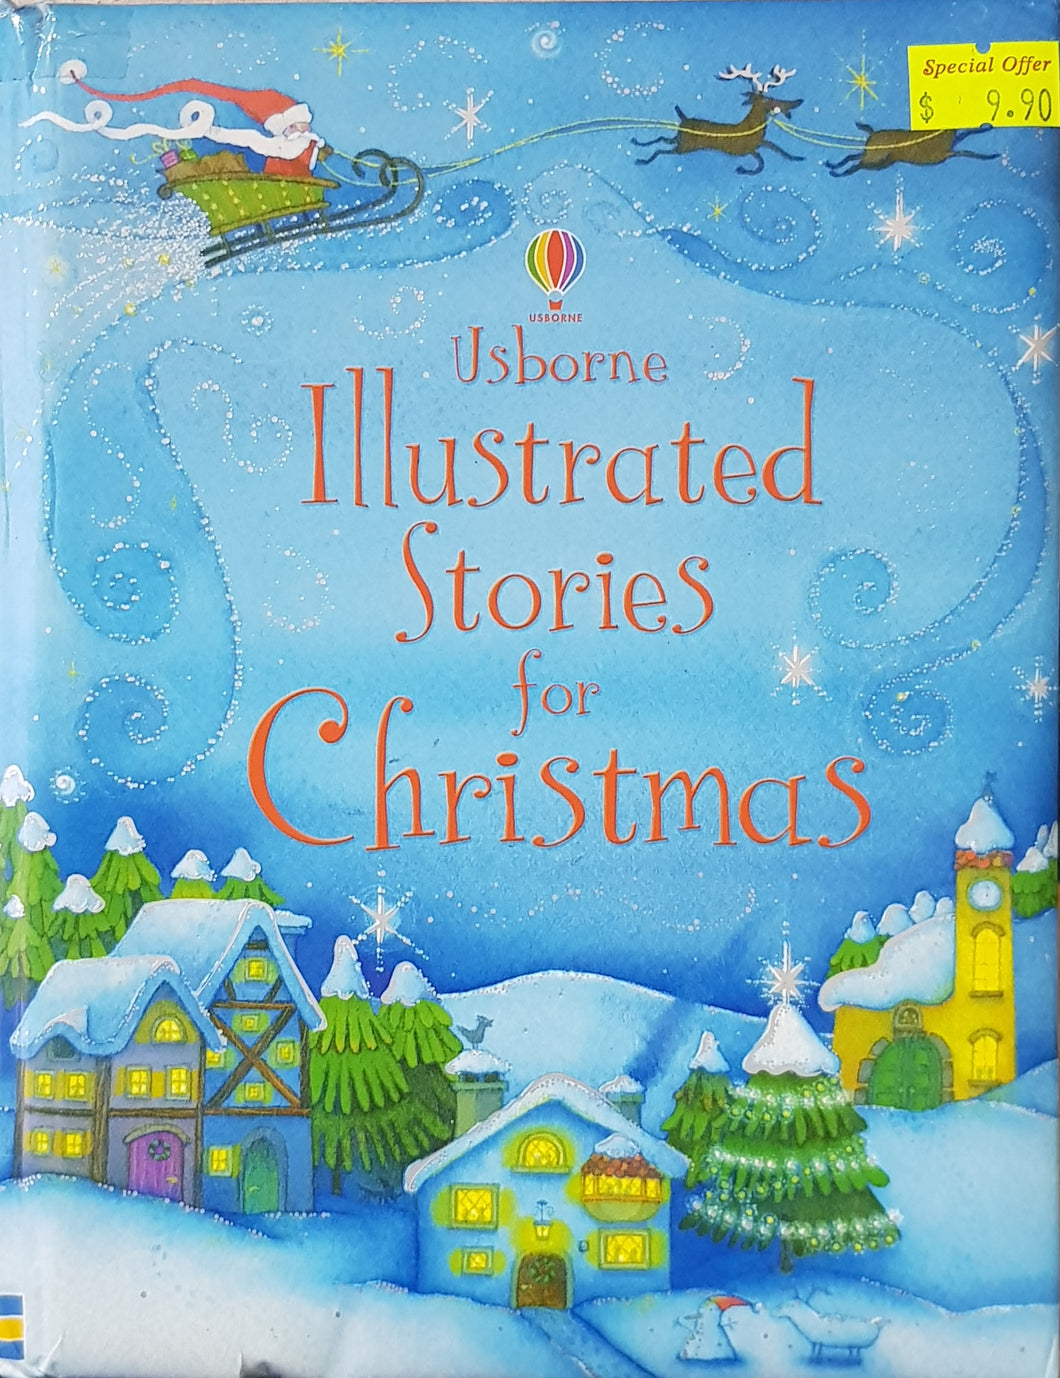 Illustrated Christmas Stories - Usborne